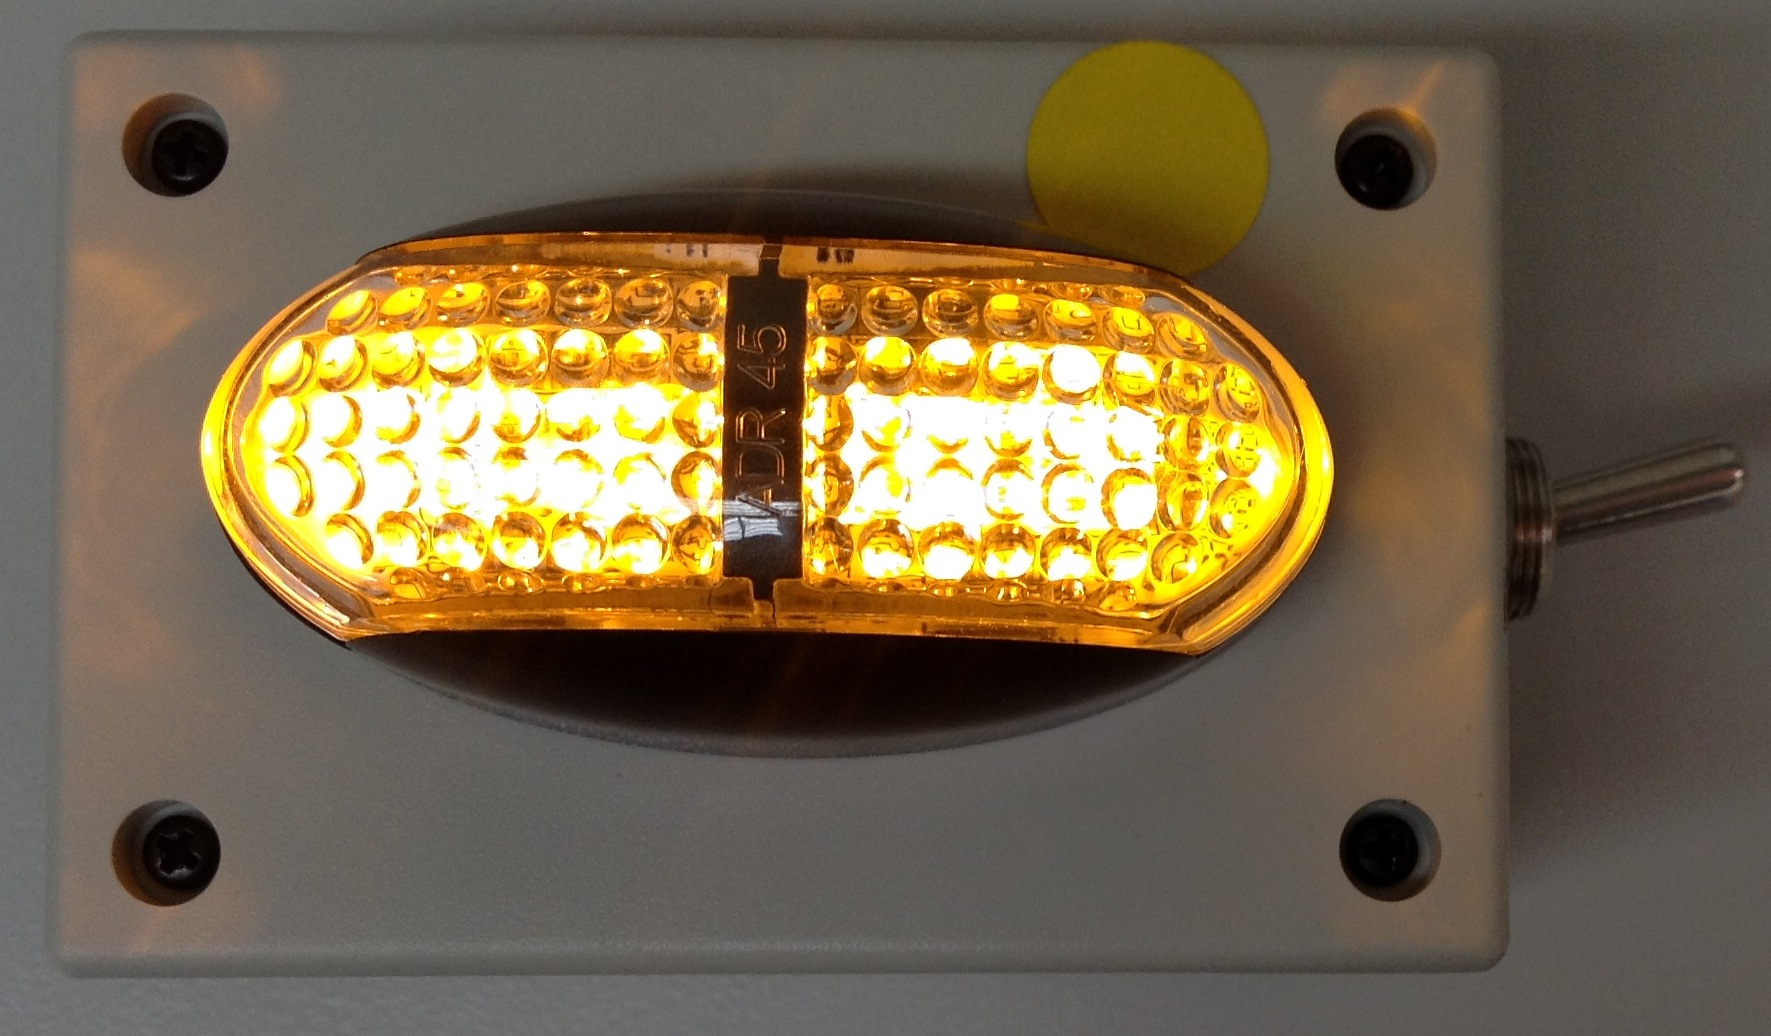 br1a-amber-oversize-magnetic-clearance-light-by-ultimate-led.jpg